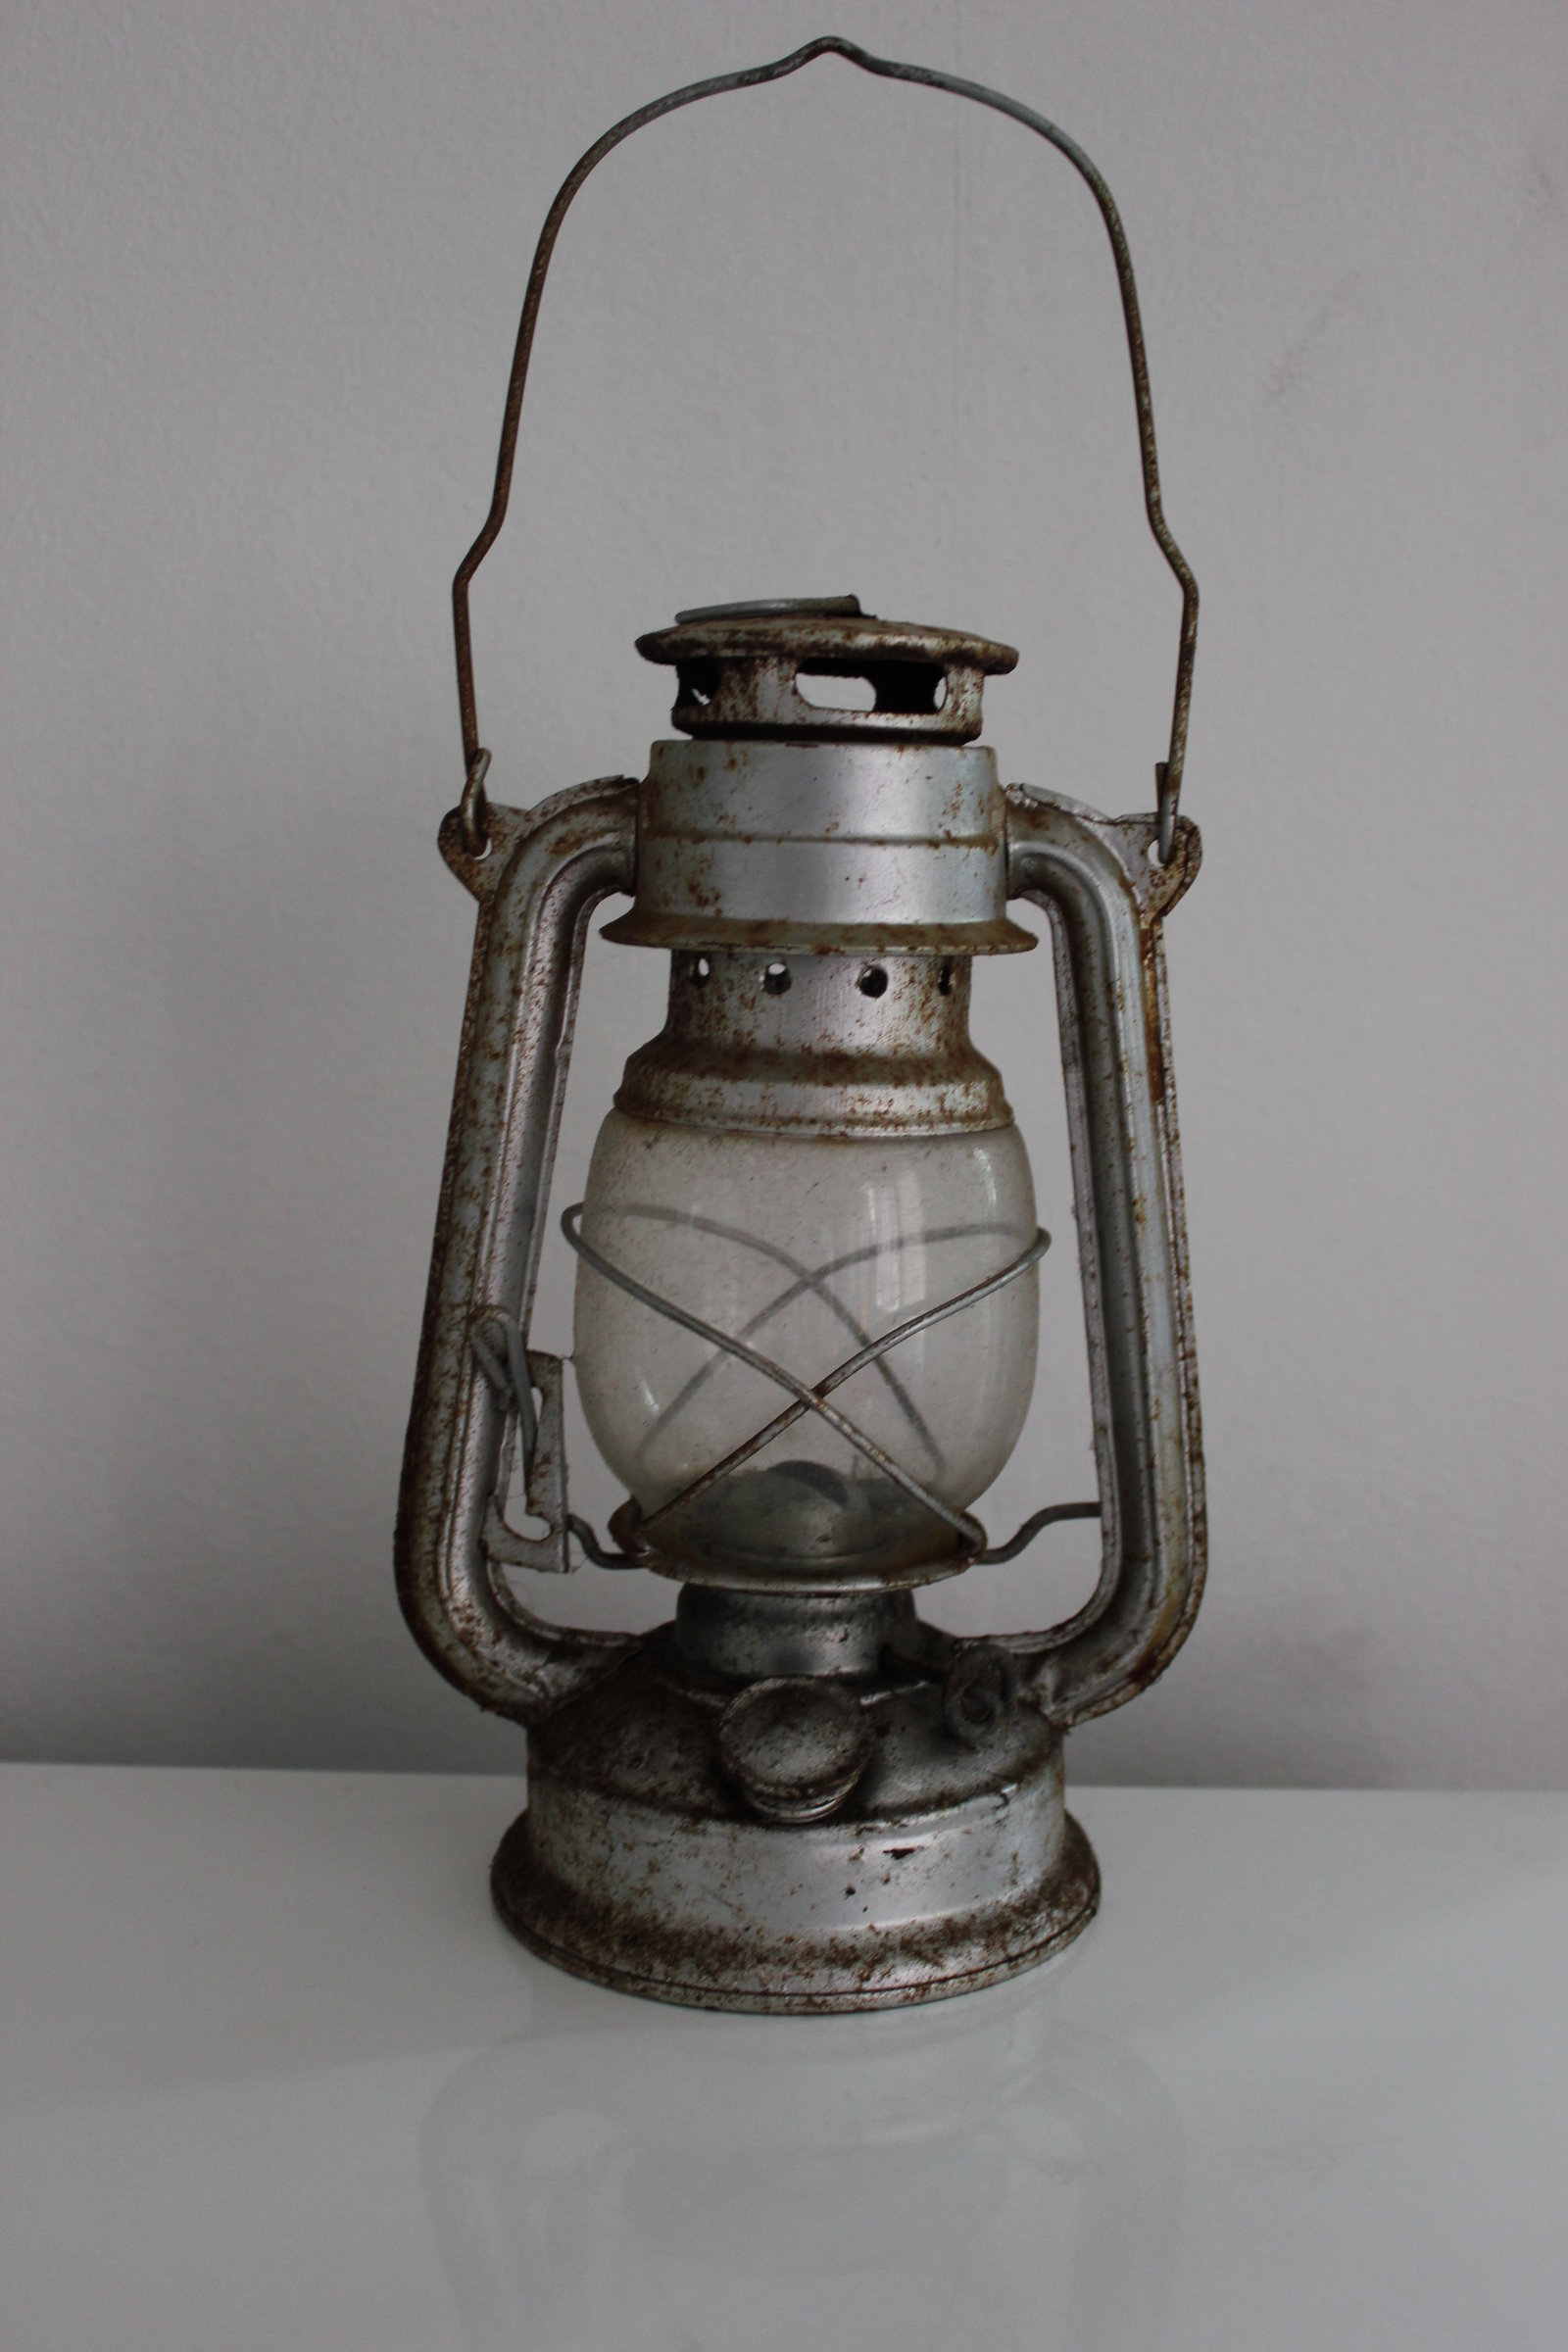 Old oil lamps - Bringing the vintage lighting to style | Warisan ...